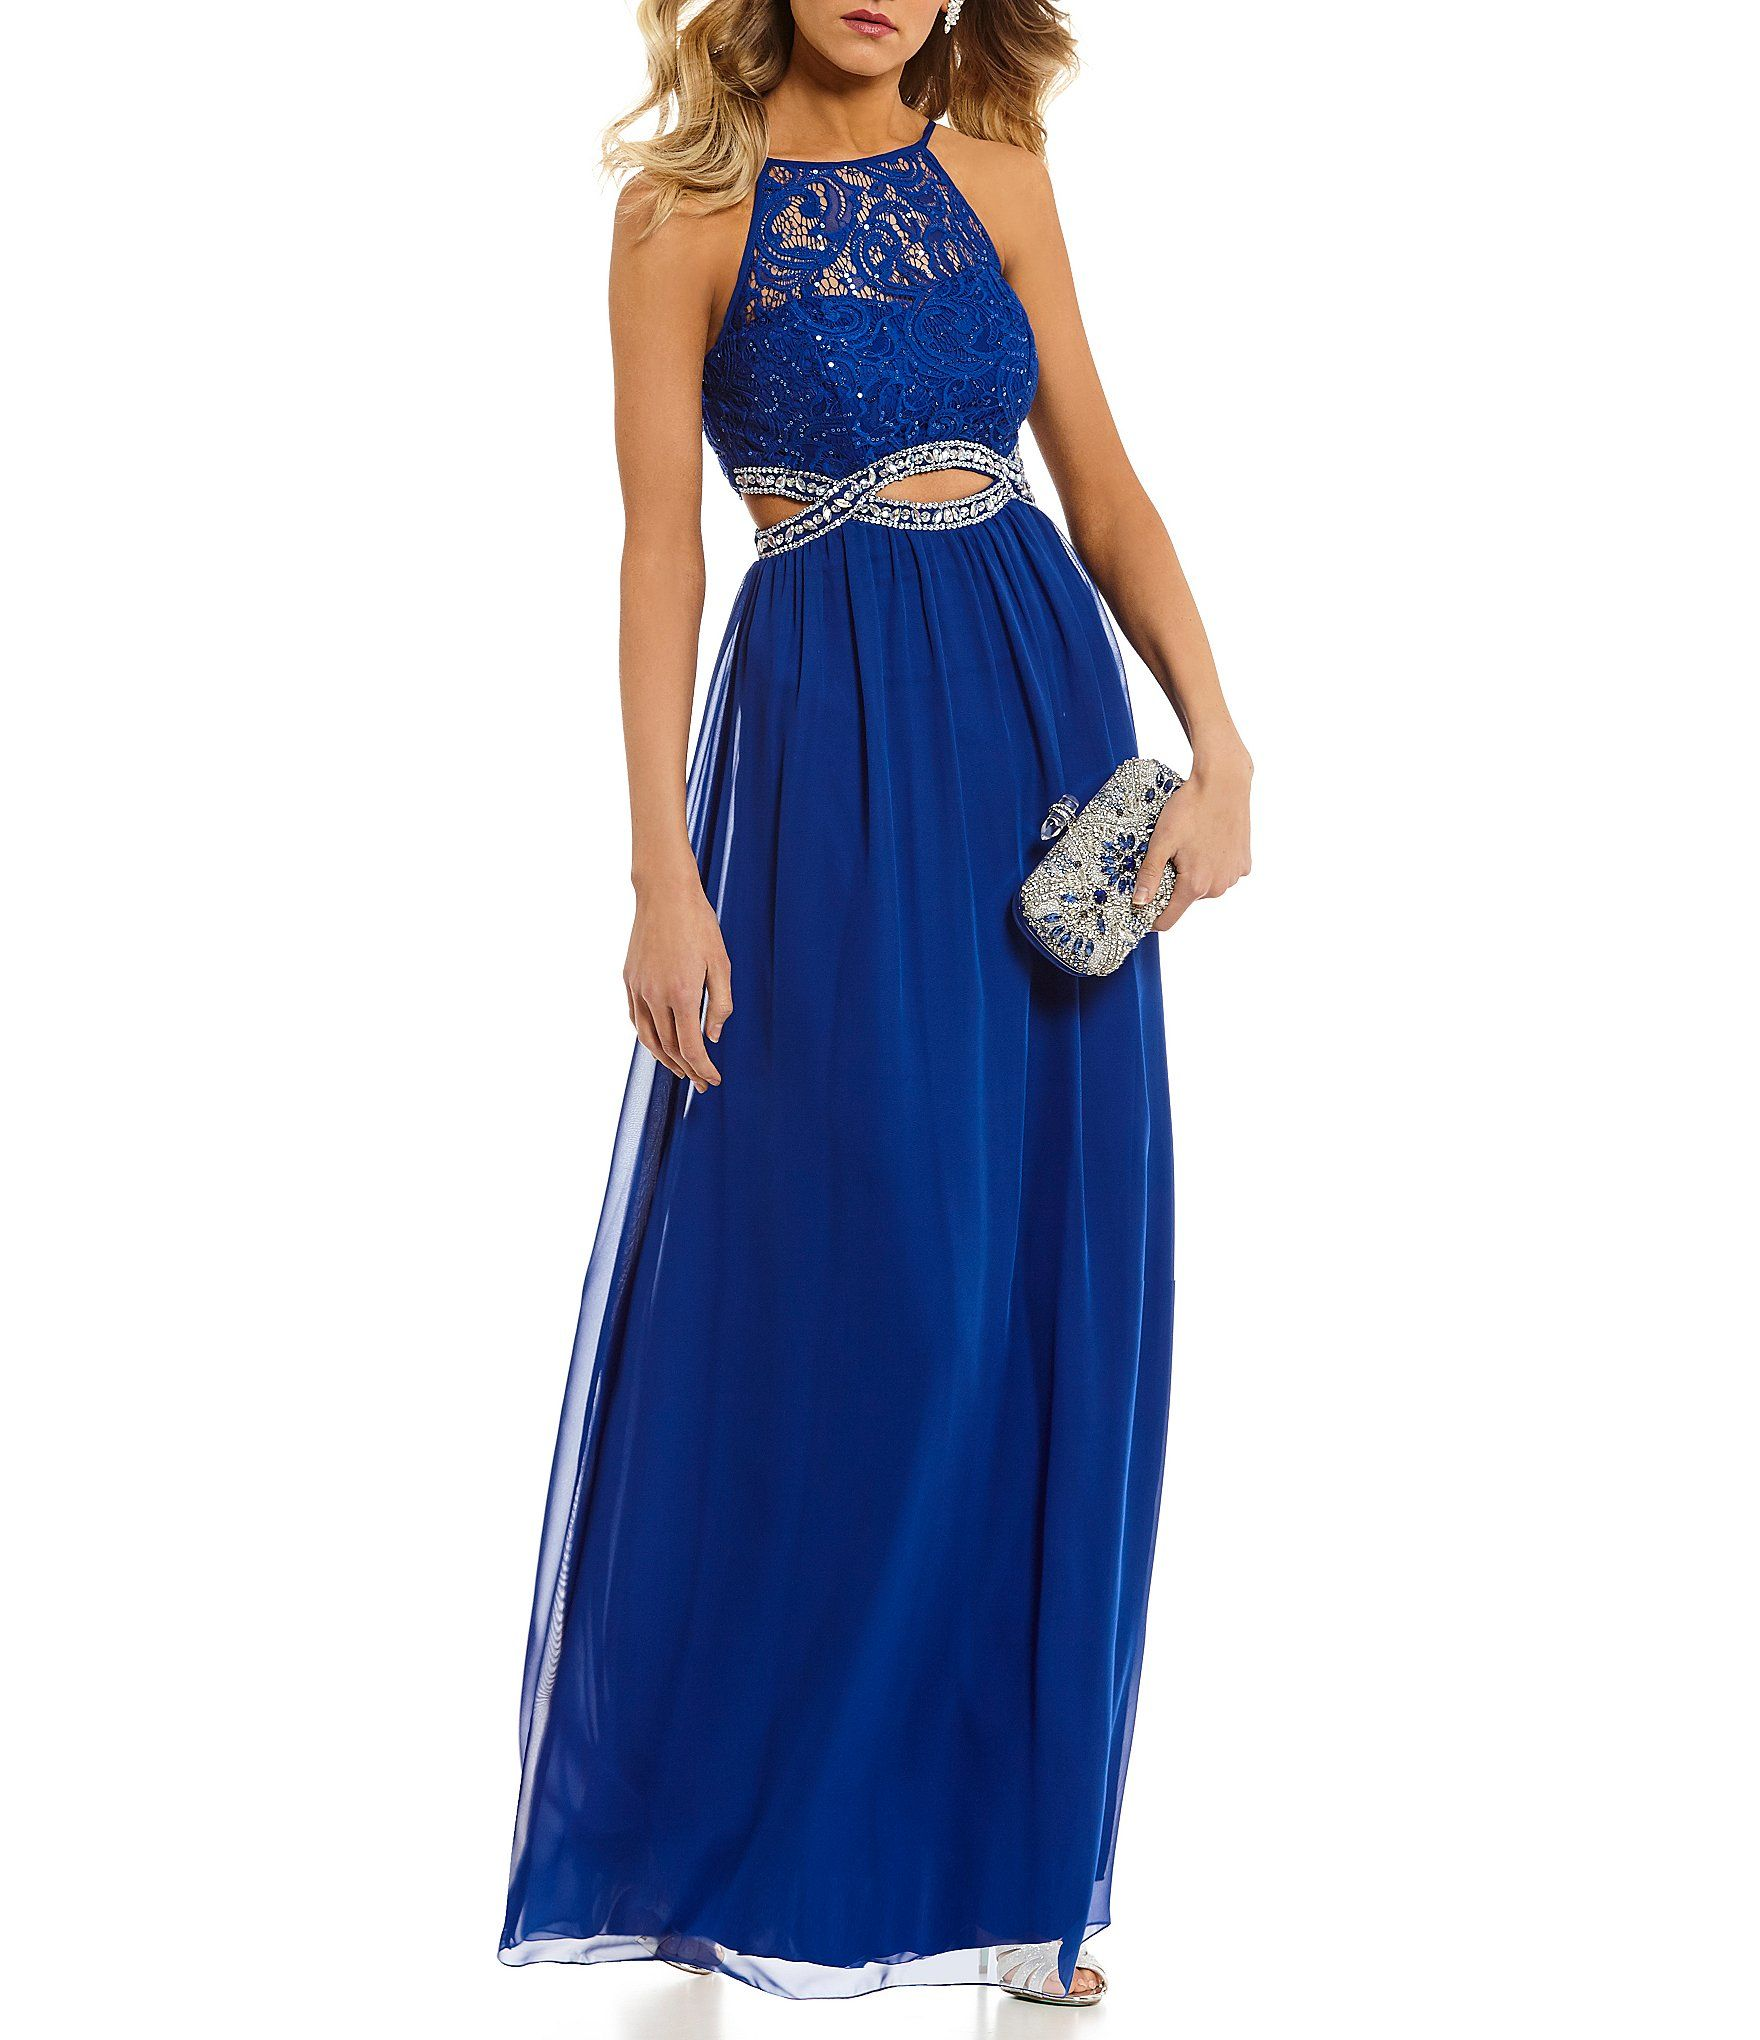 bf73259c623 Xtraordinary Lace Bodice Infinity Waist Long Dress  Dillards Prom Dresses  Blue